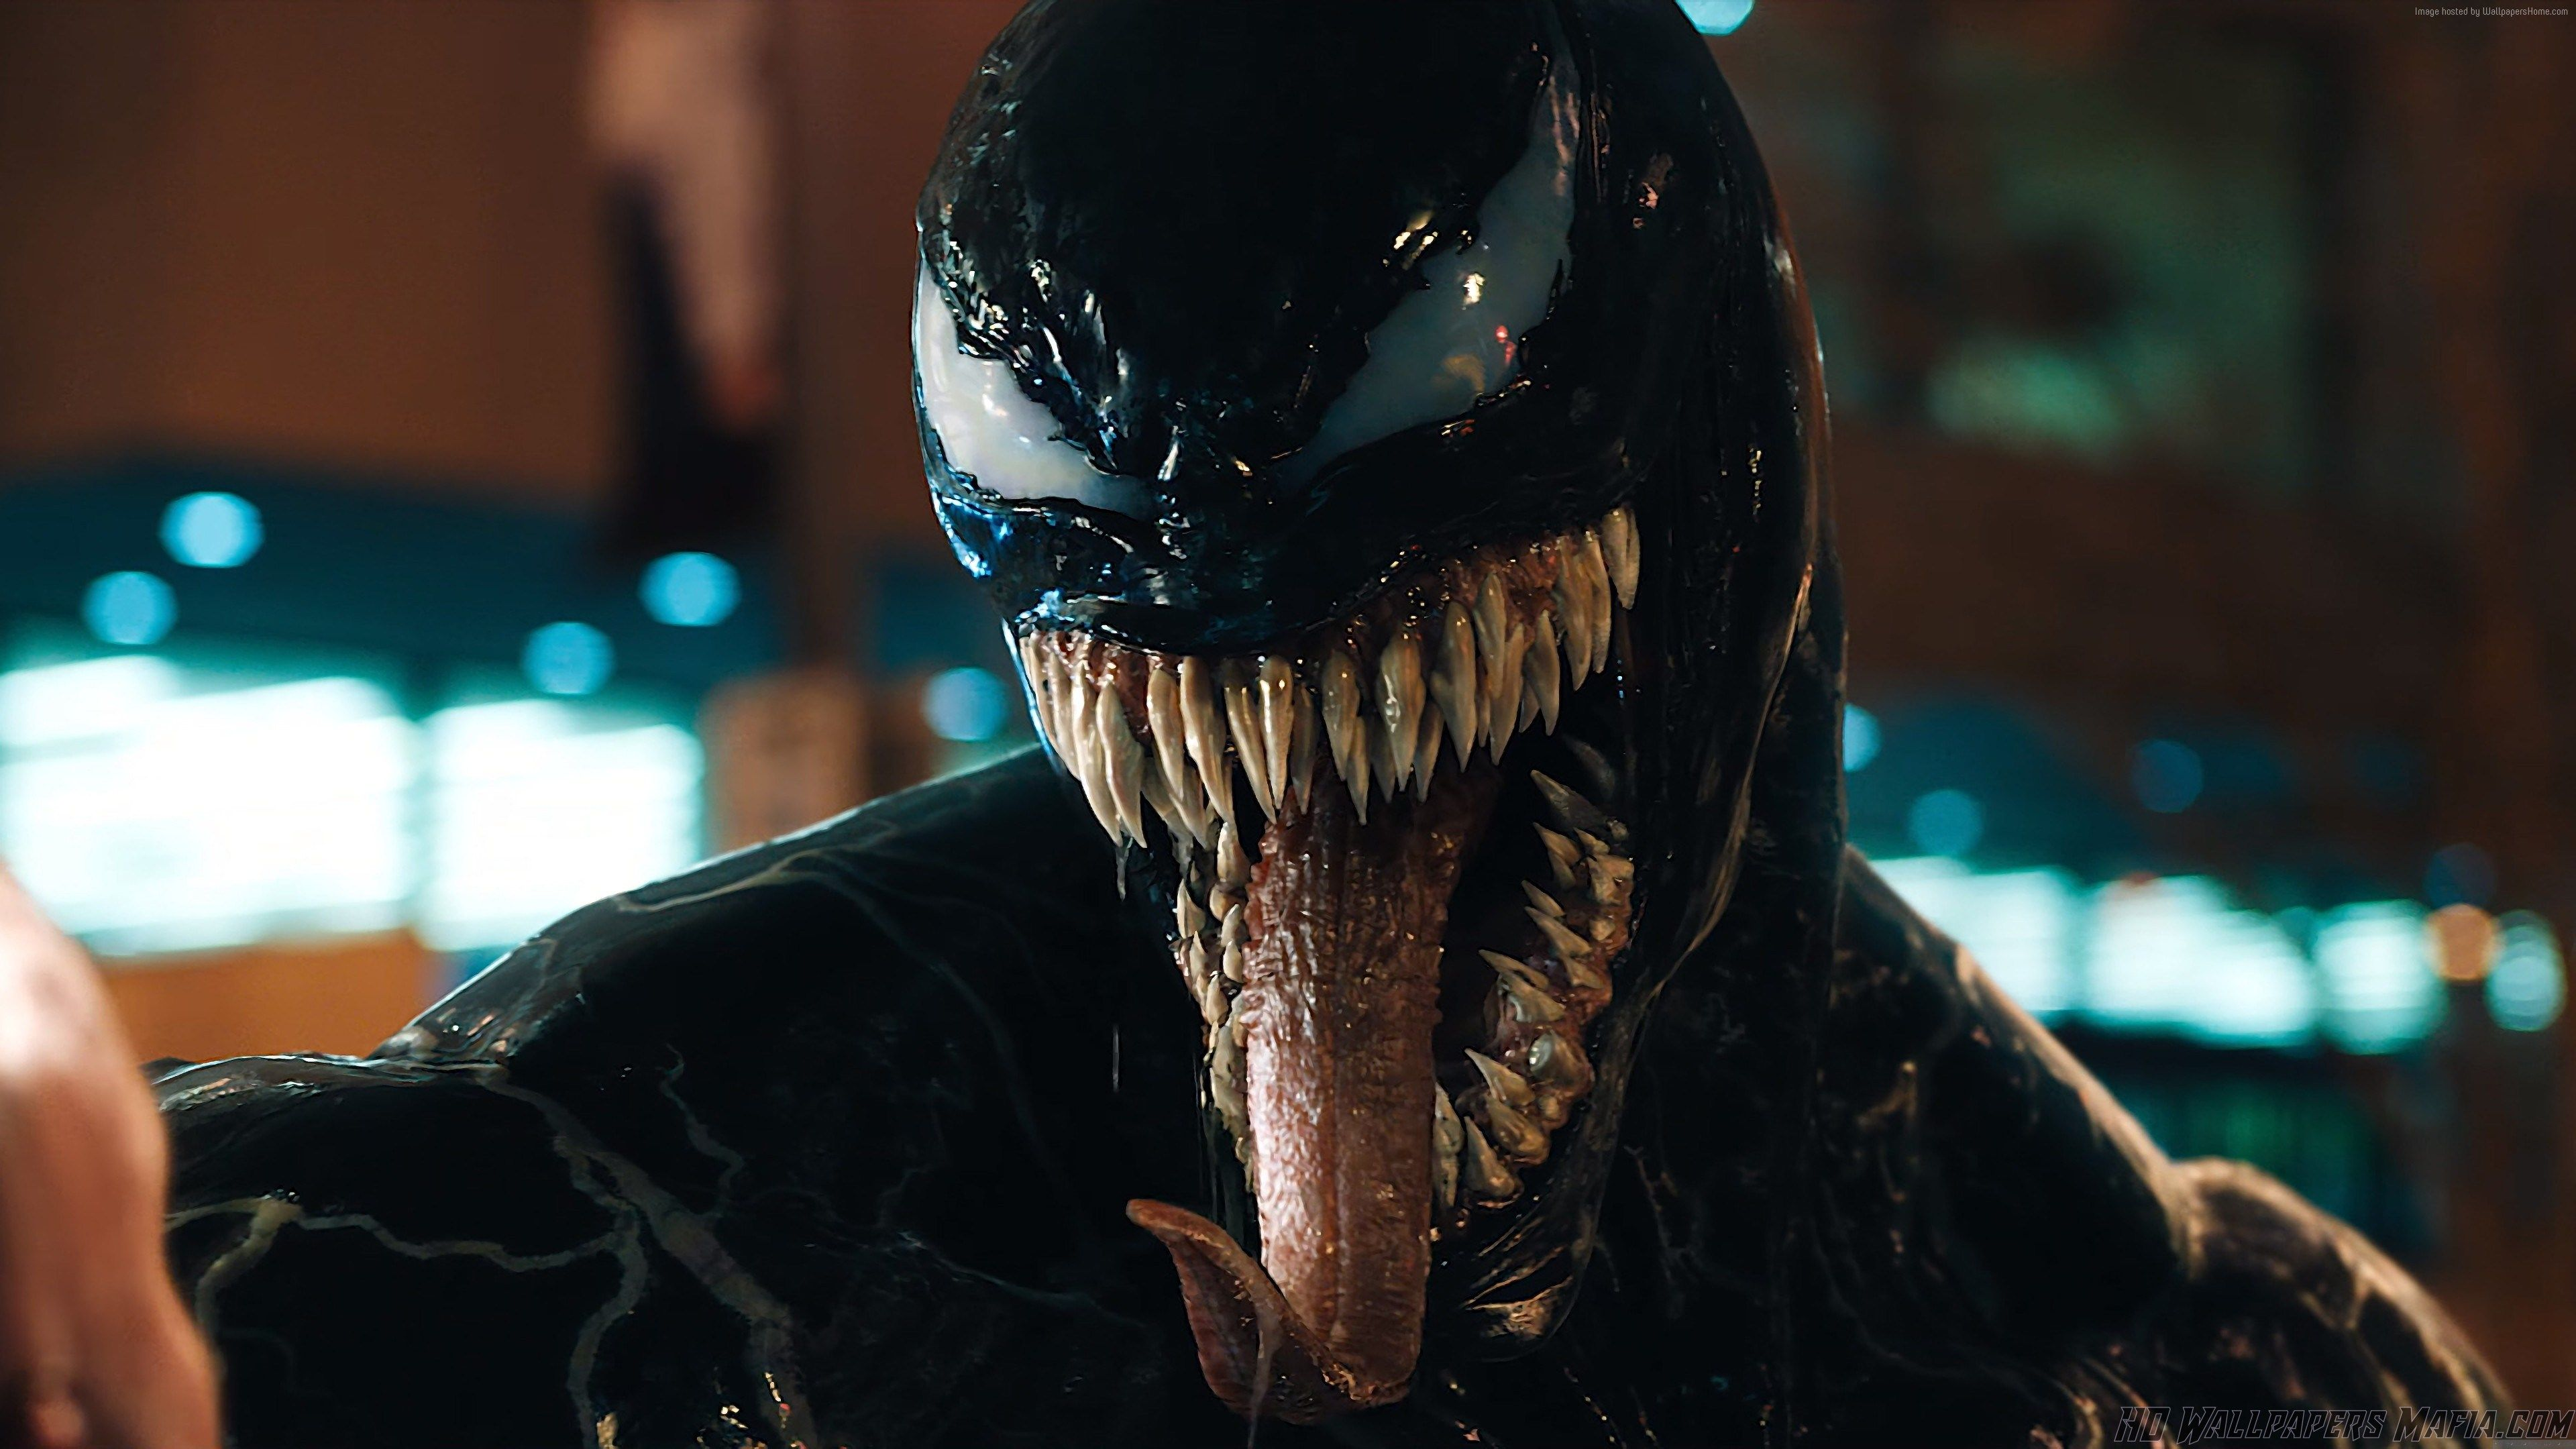 Venom sequel confirmed; original screenwriter signed on